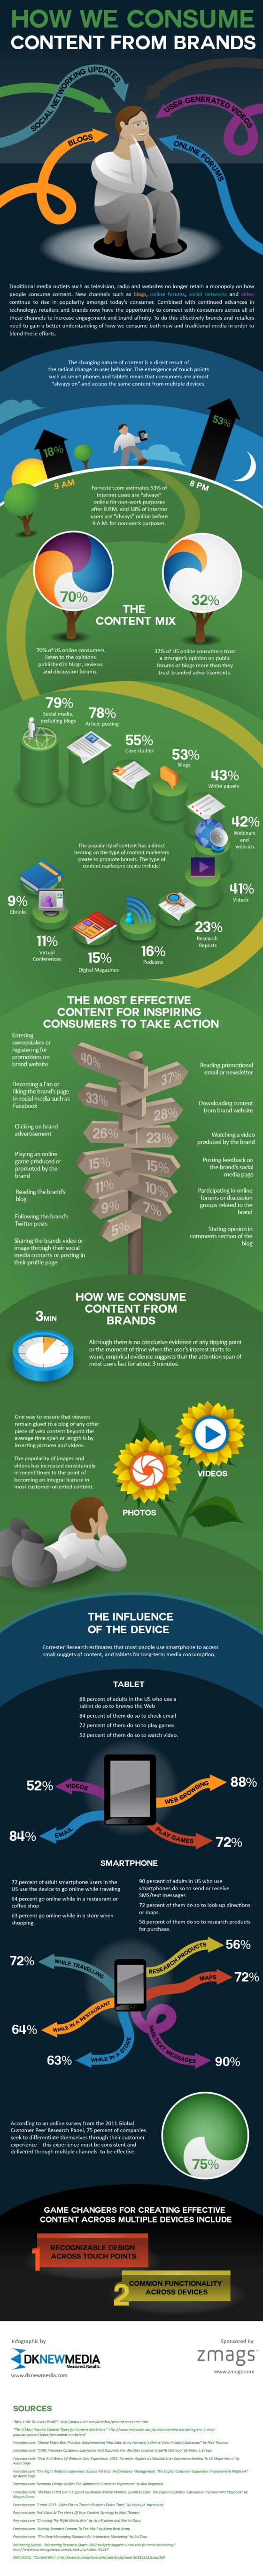 How users are consuming brands' content